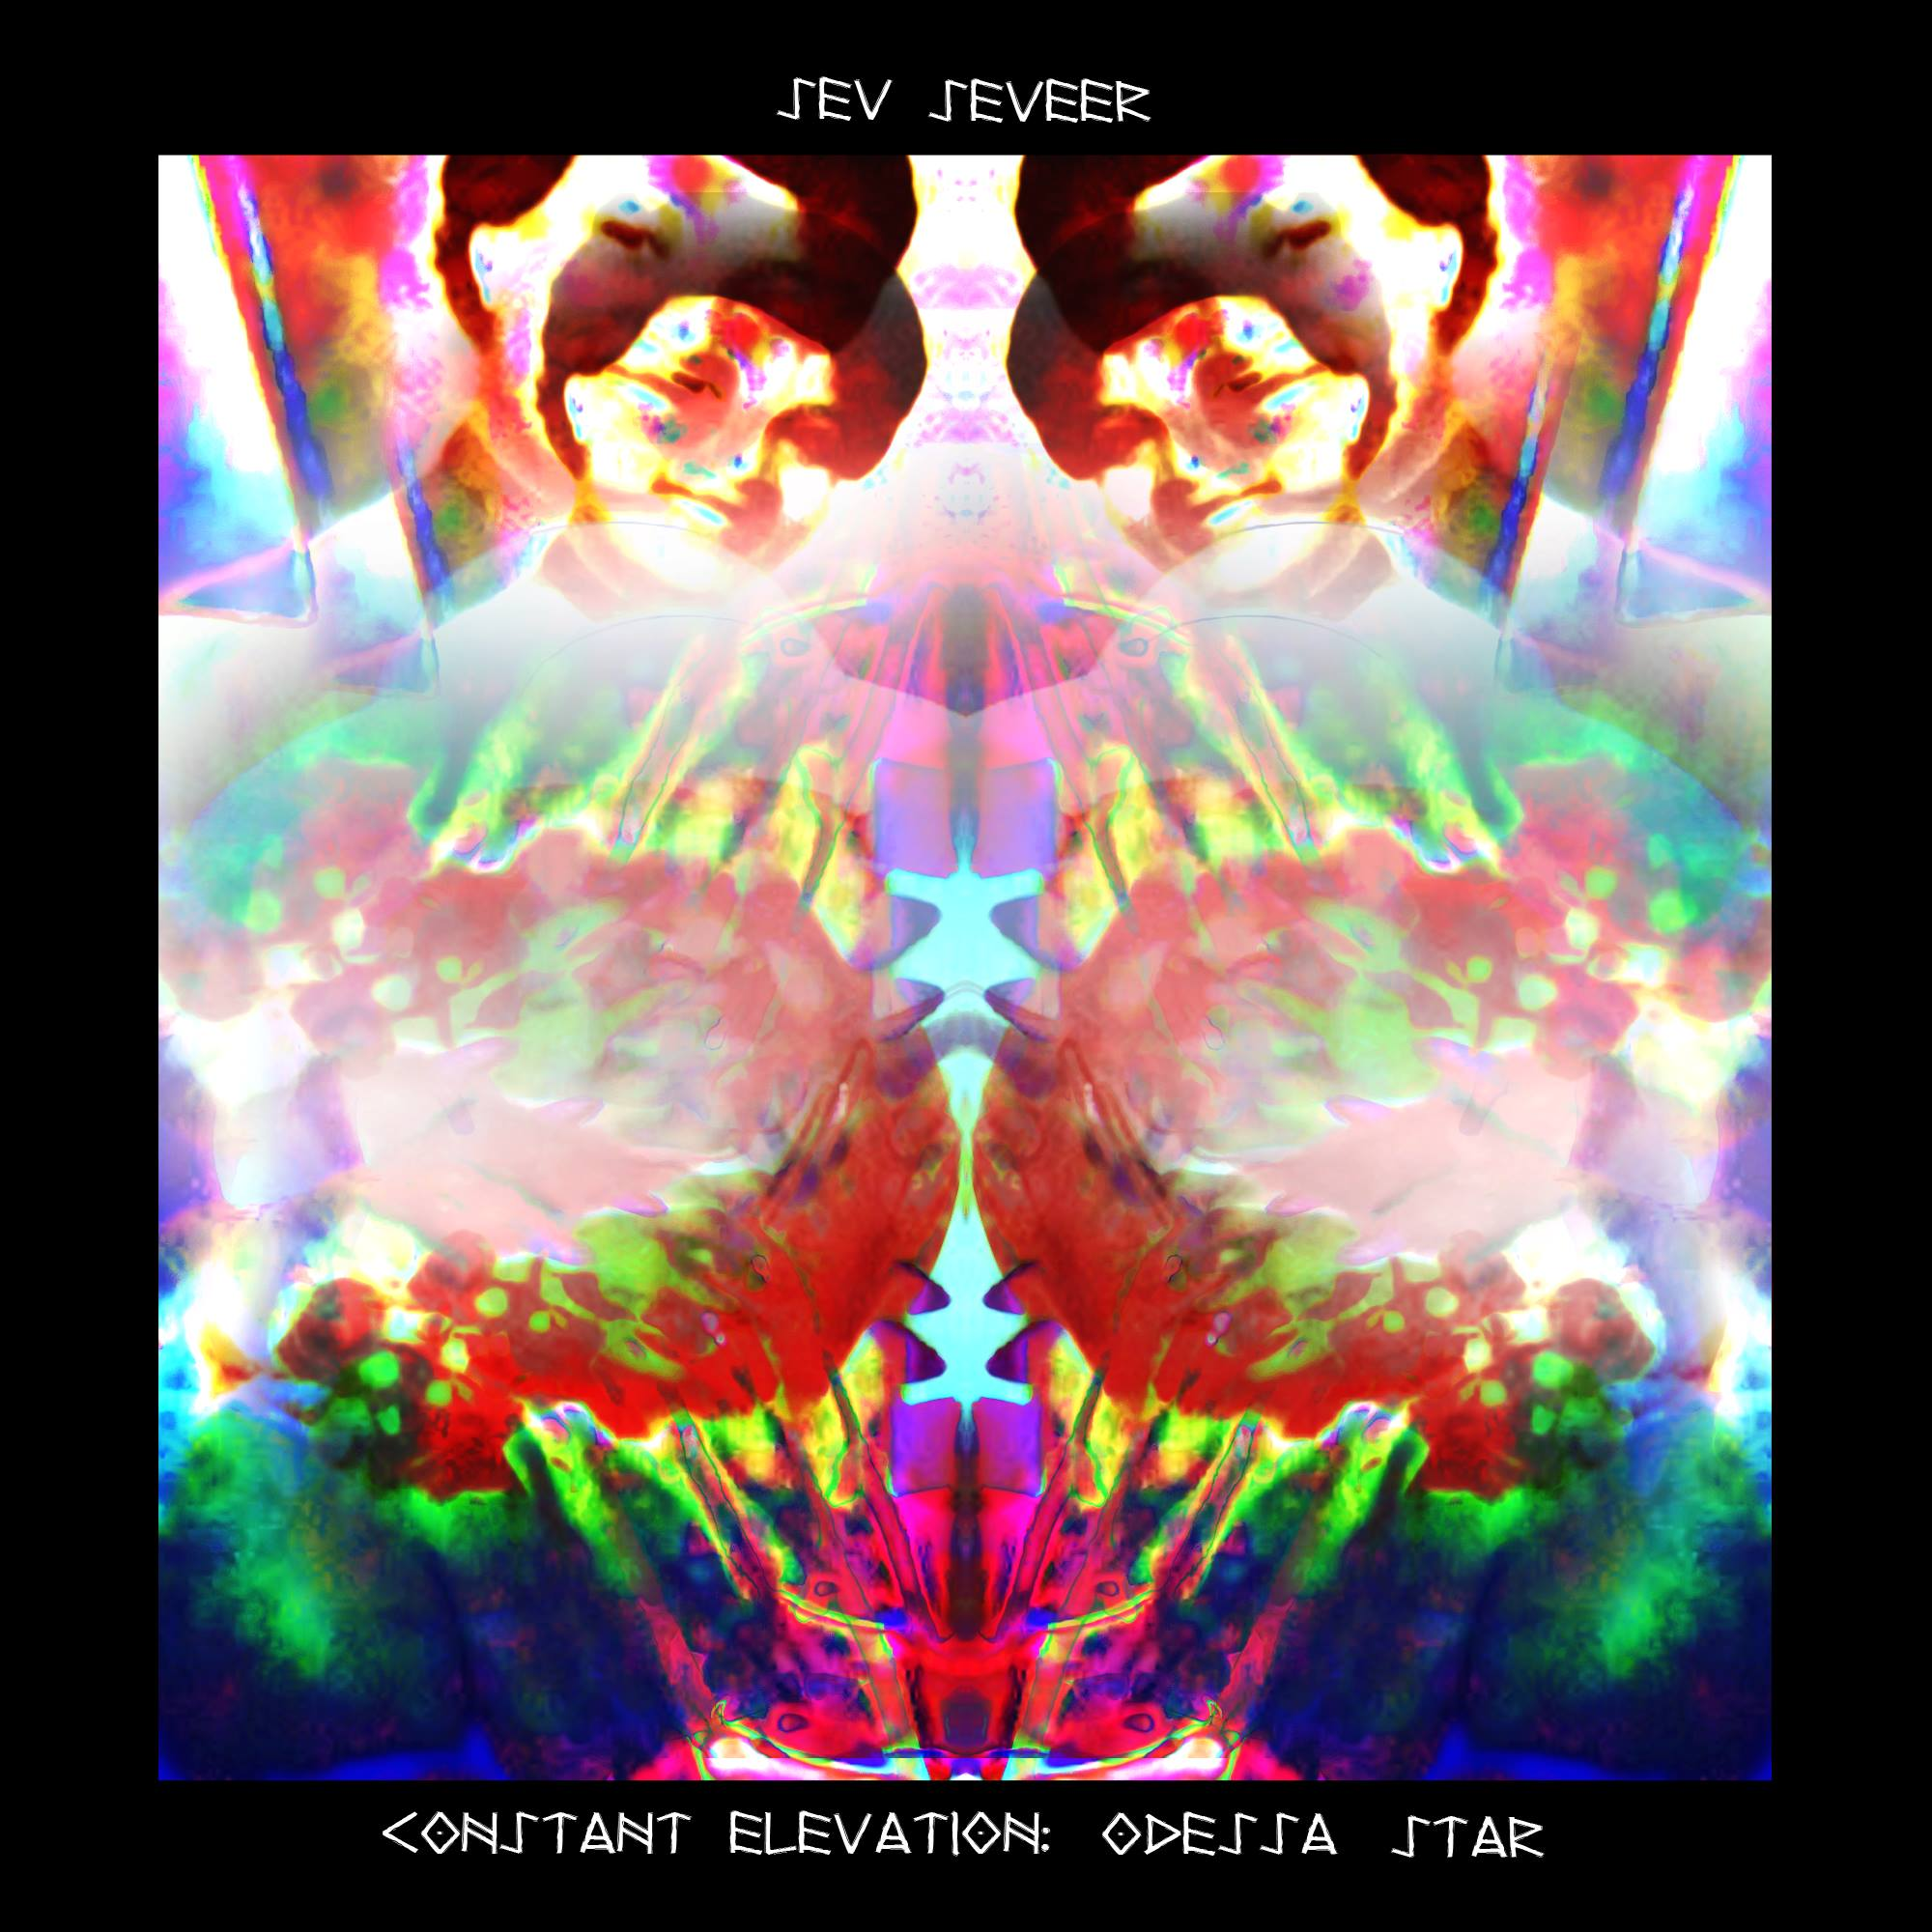 SEV SEVEER - CONSTANT ELEVATION: ODESSA STAR (BOAN - 001)    FREE DOWNLOAD     Constant Elevation:  Odessa Star , is a 30-minute soundscape in the form of a sound design driven beat tape for the scrambled brain. The release is best described as an audio narrative of 91 year old woman floating through space….Say what?!?  It is a composition inspired by Seveer's Grandmother who dealt with dementia in her later years.  Sev connects on the deep frequency of a mind blown channeled through through his SP-404 on this forward thinking journey.